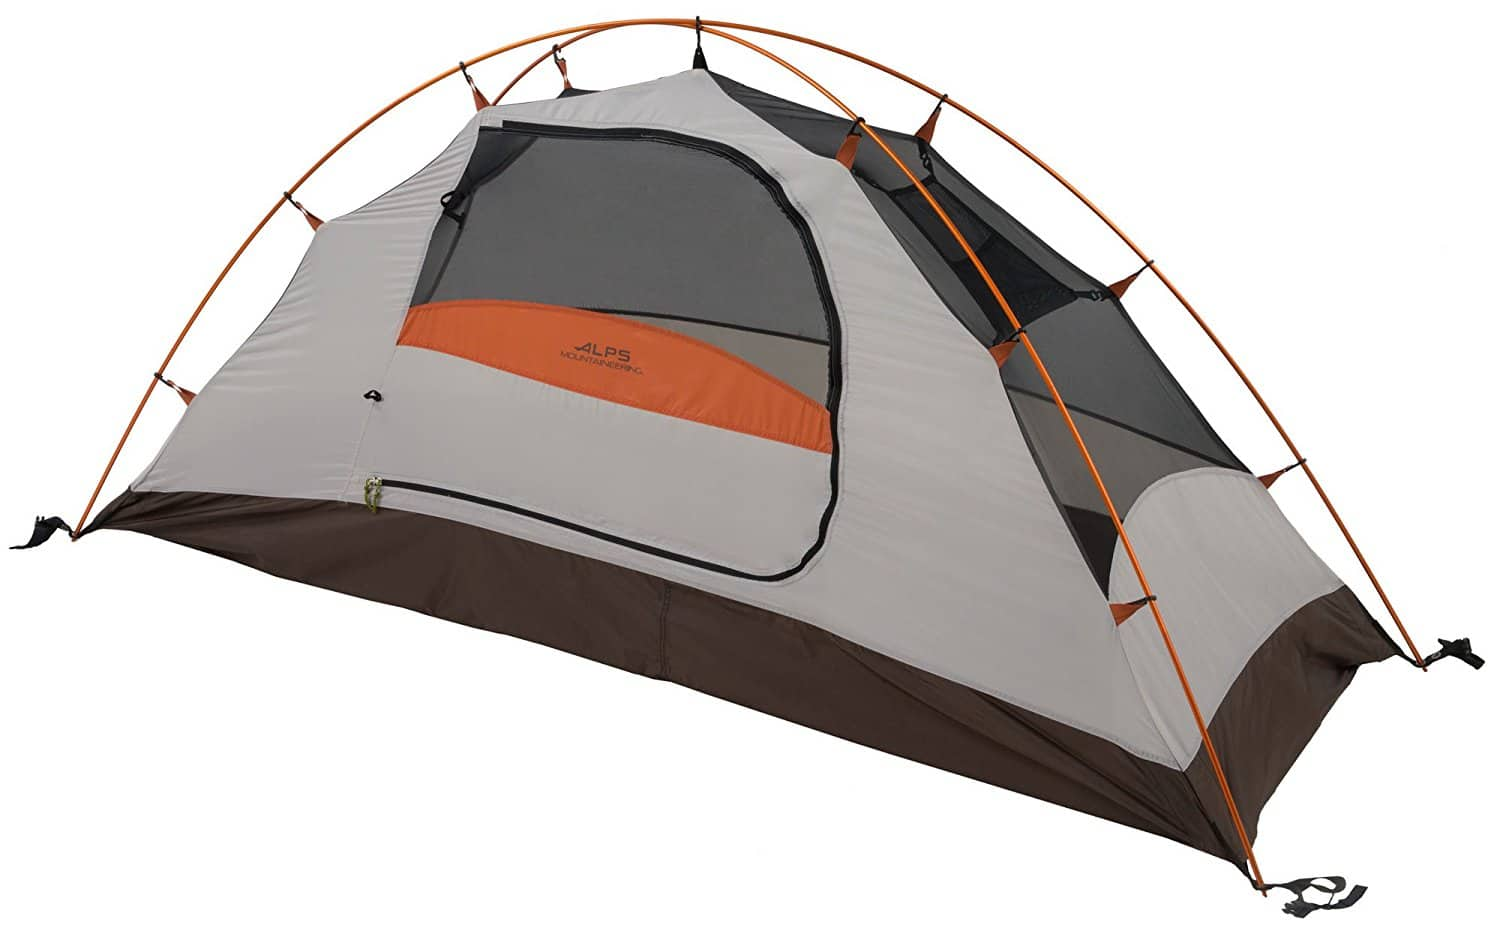 ALPS Mountaineering Lynx 1-Person Tent $57.59 w/FS @ Amazon (Lowest Price)